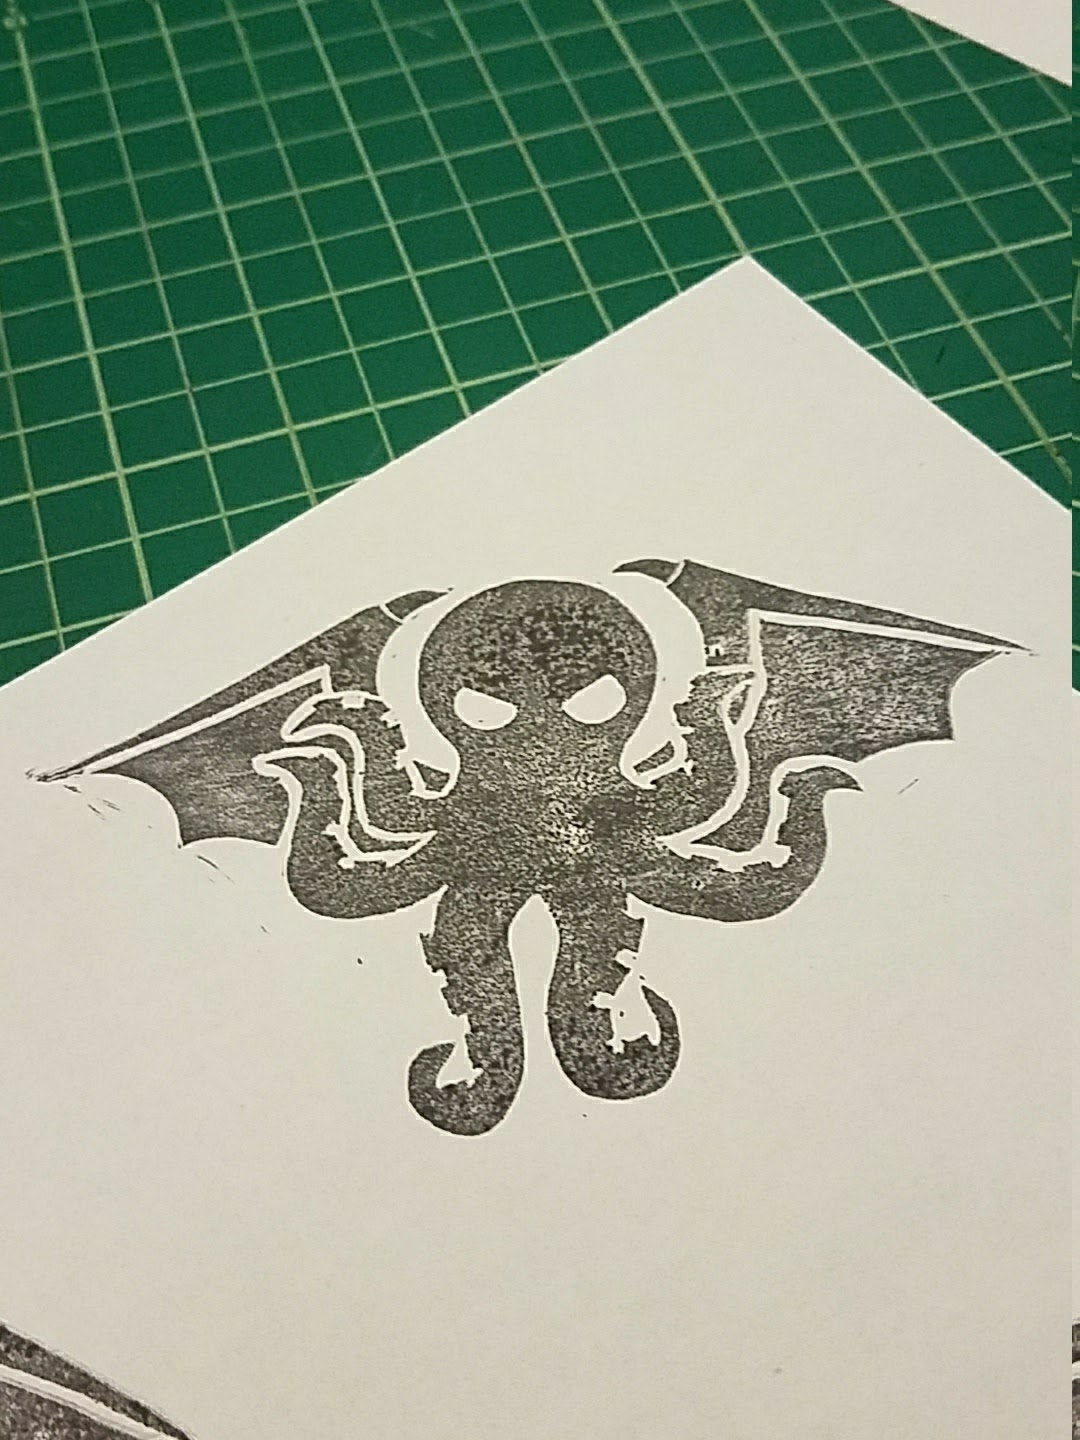 A block-printed image of Cthulhu's head and wings in a mottled black on a corner of a piece of white paper. The paper is resting on a gridded green cutting mat.